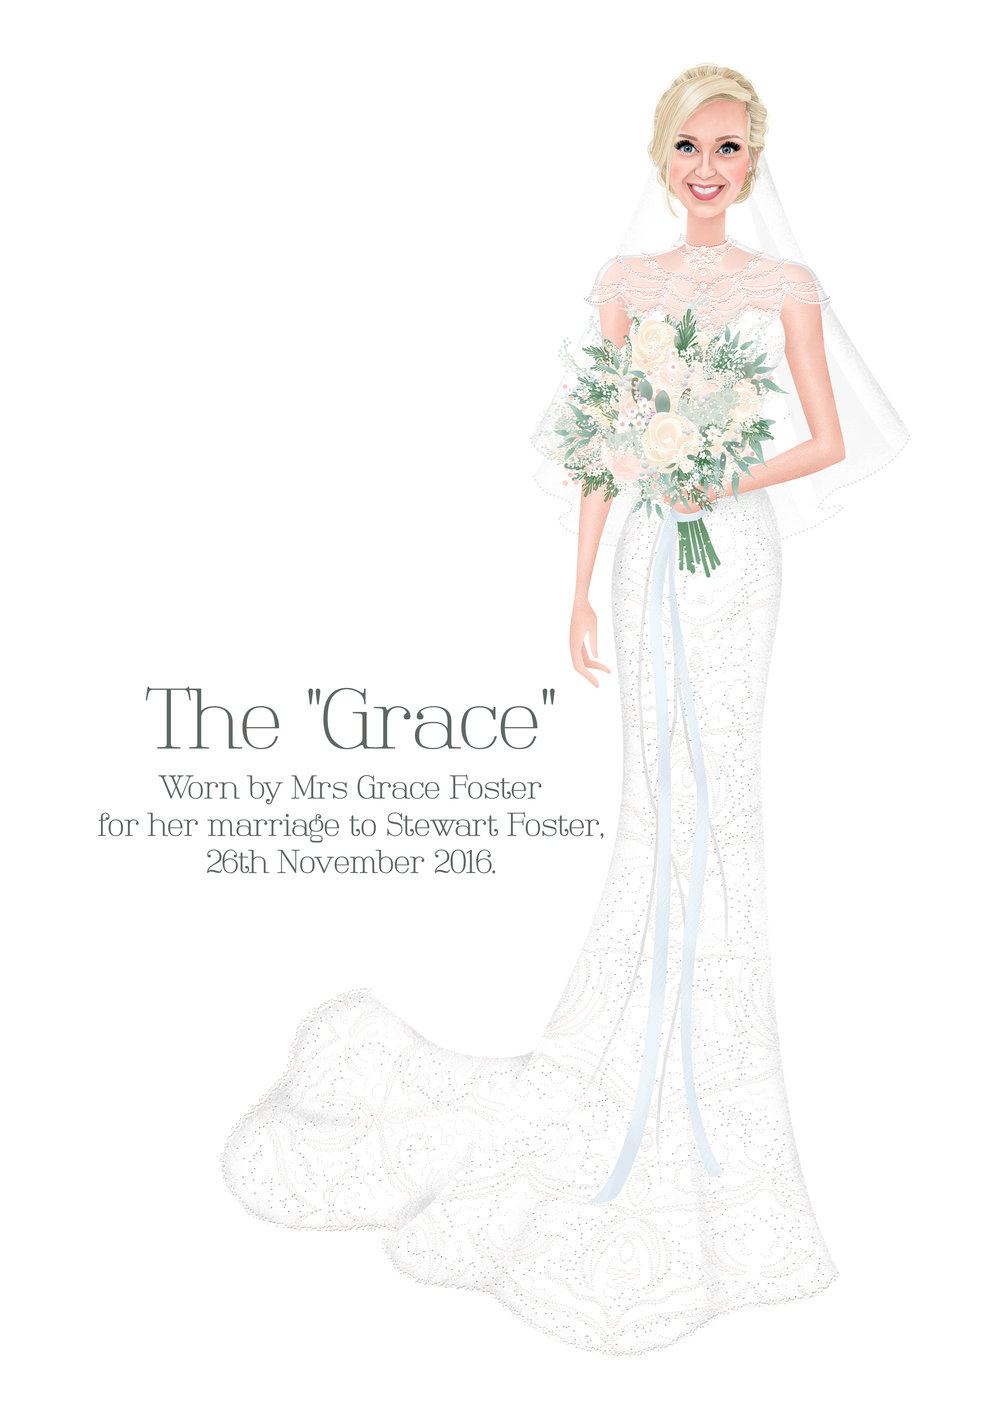 Stewart Foster - Bride Portrait - The Grace - A3.jpg